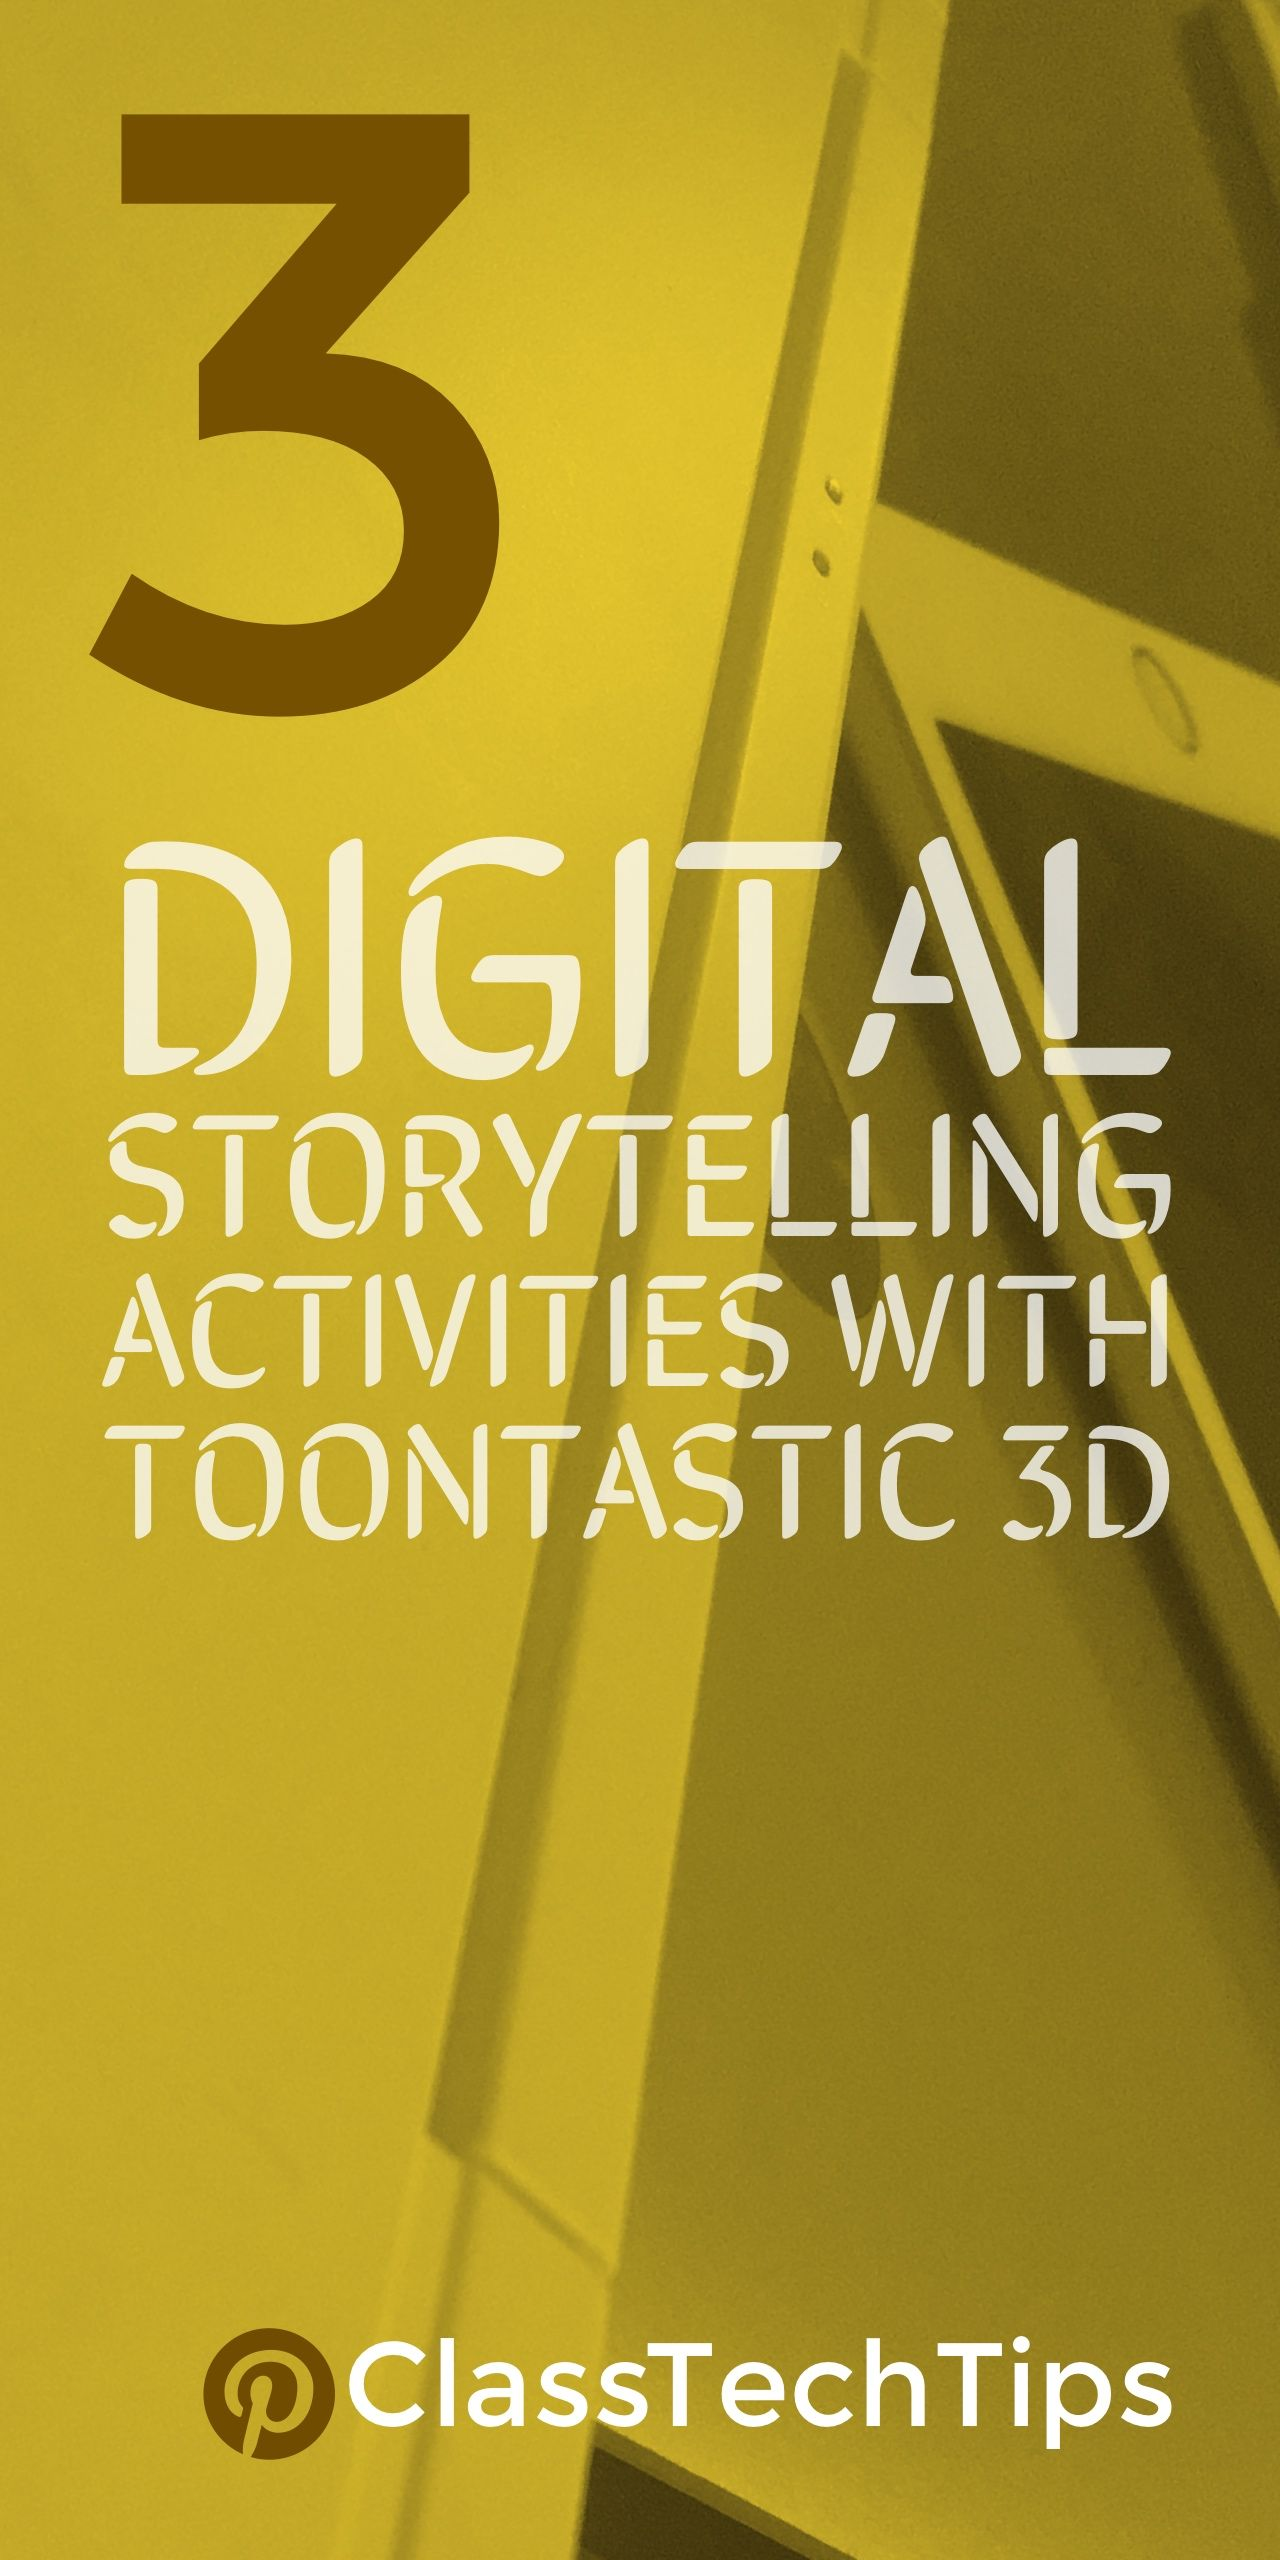 3 Digital Storytelling Activities with Toontastic 3D